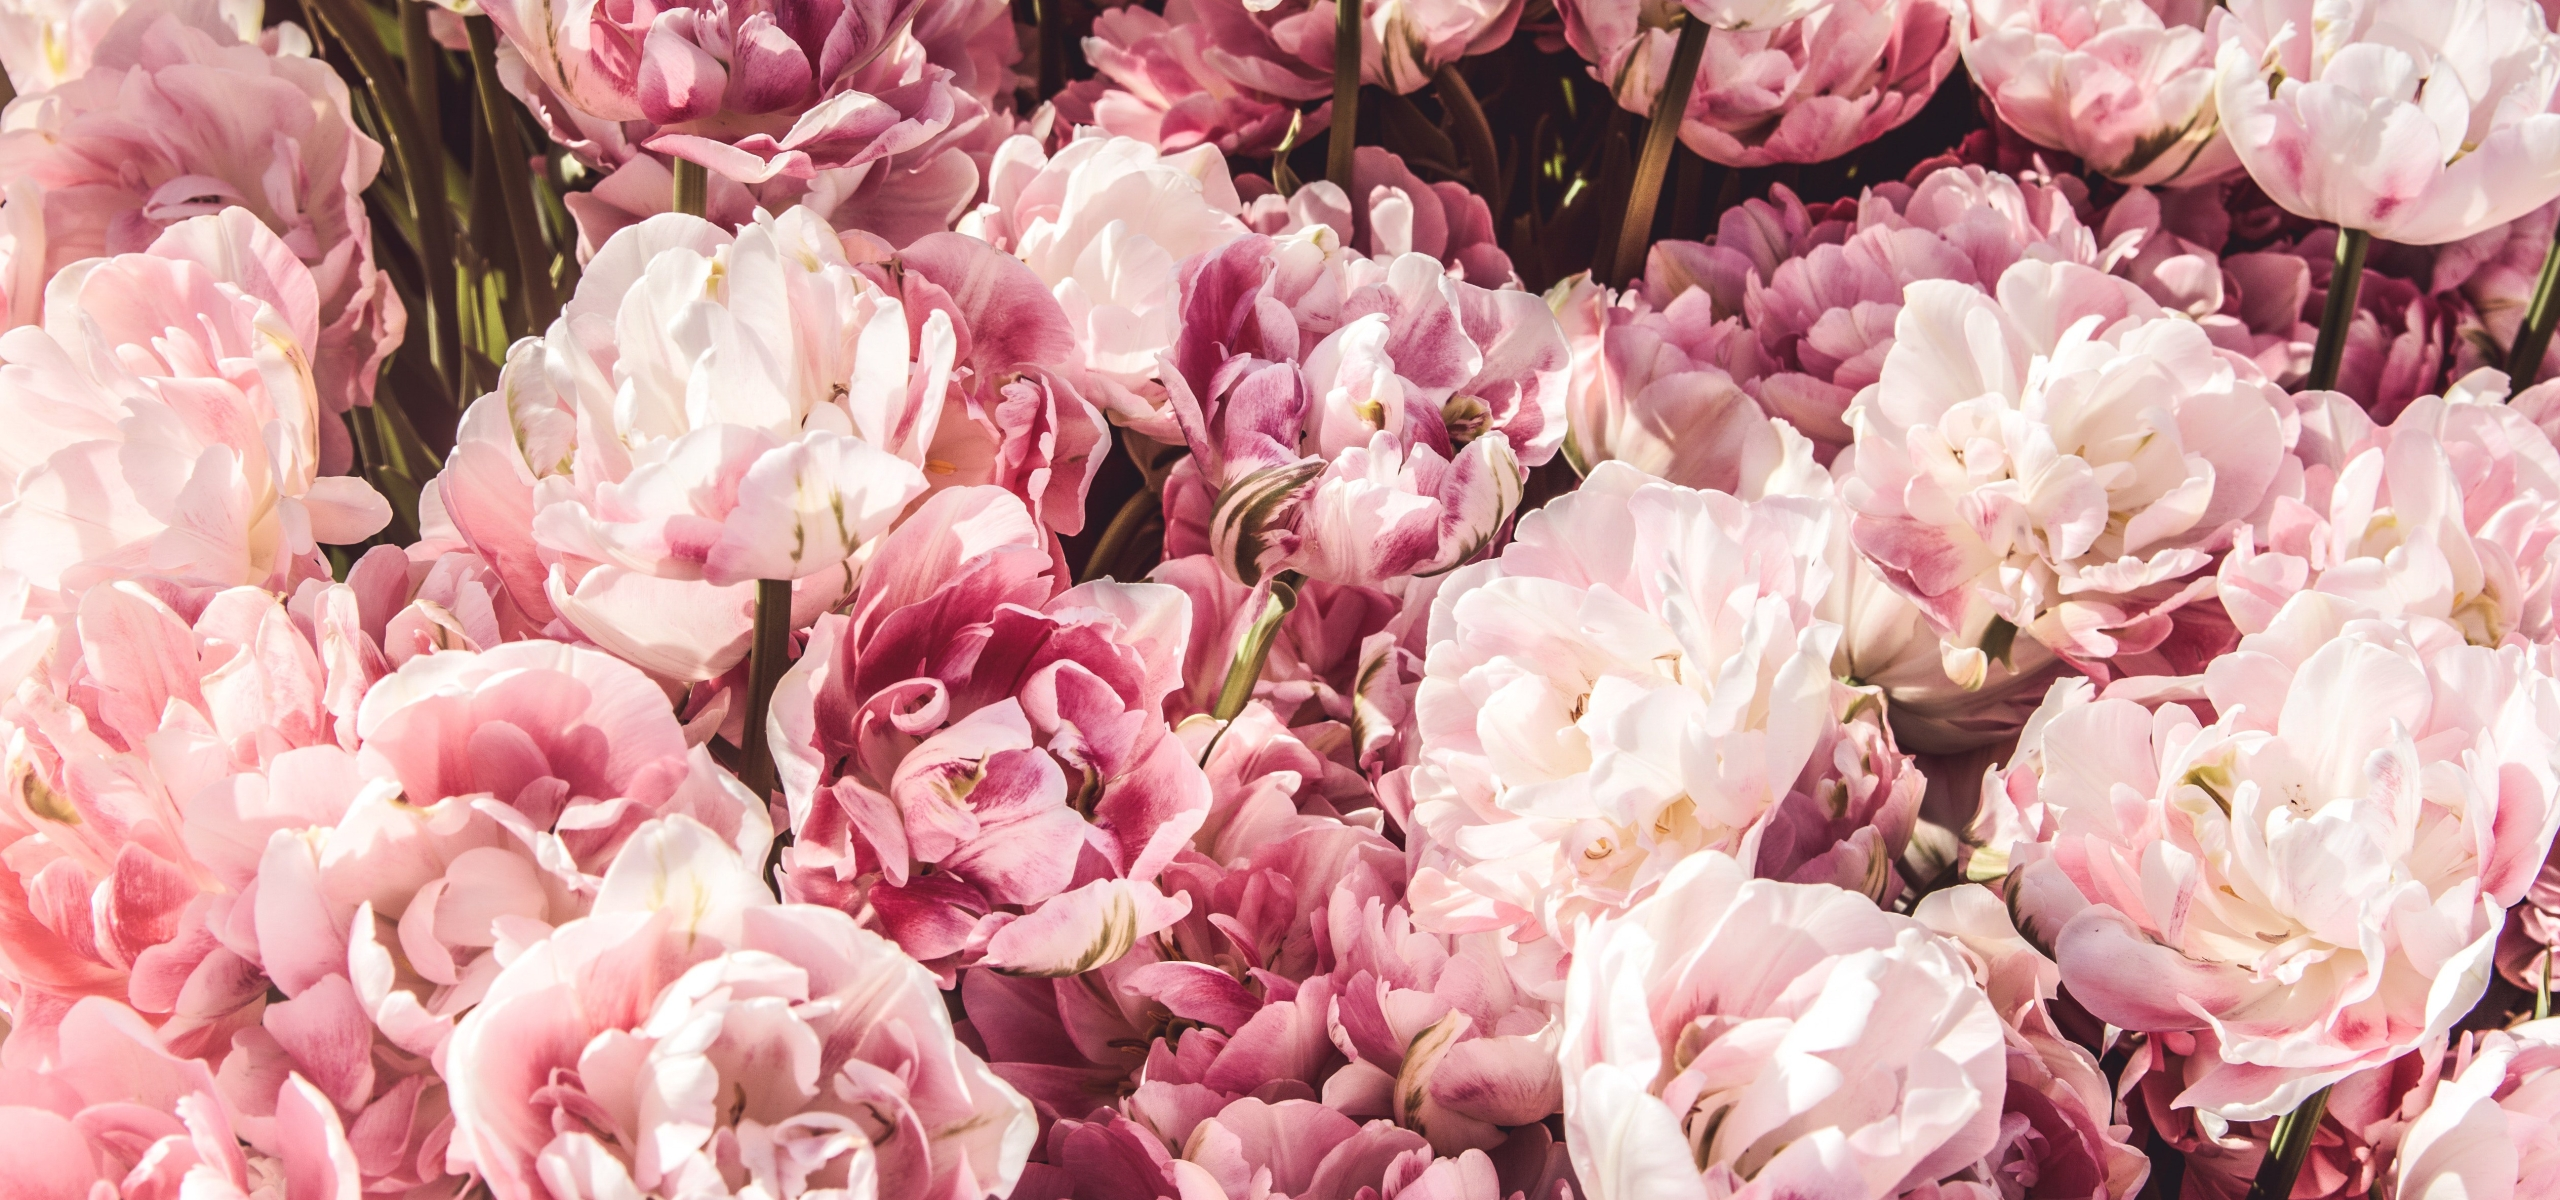 The 8 most popular wedding flowers decorating with flowers enjoy were wild about wedding flowers so weve rounded up the top 8 most popular wedding flowers and made a list just for you youll see many familiar blooms mightylinksfo